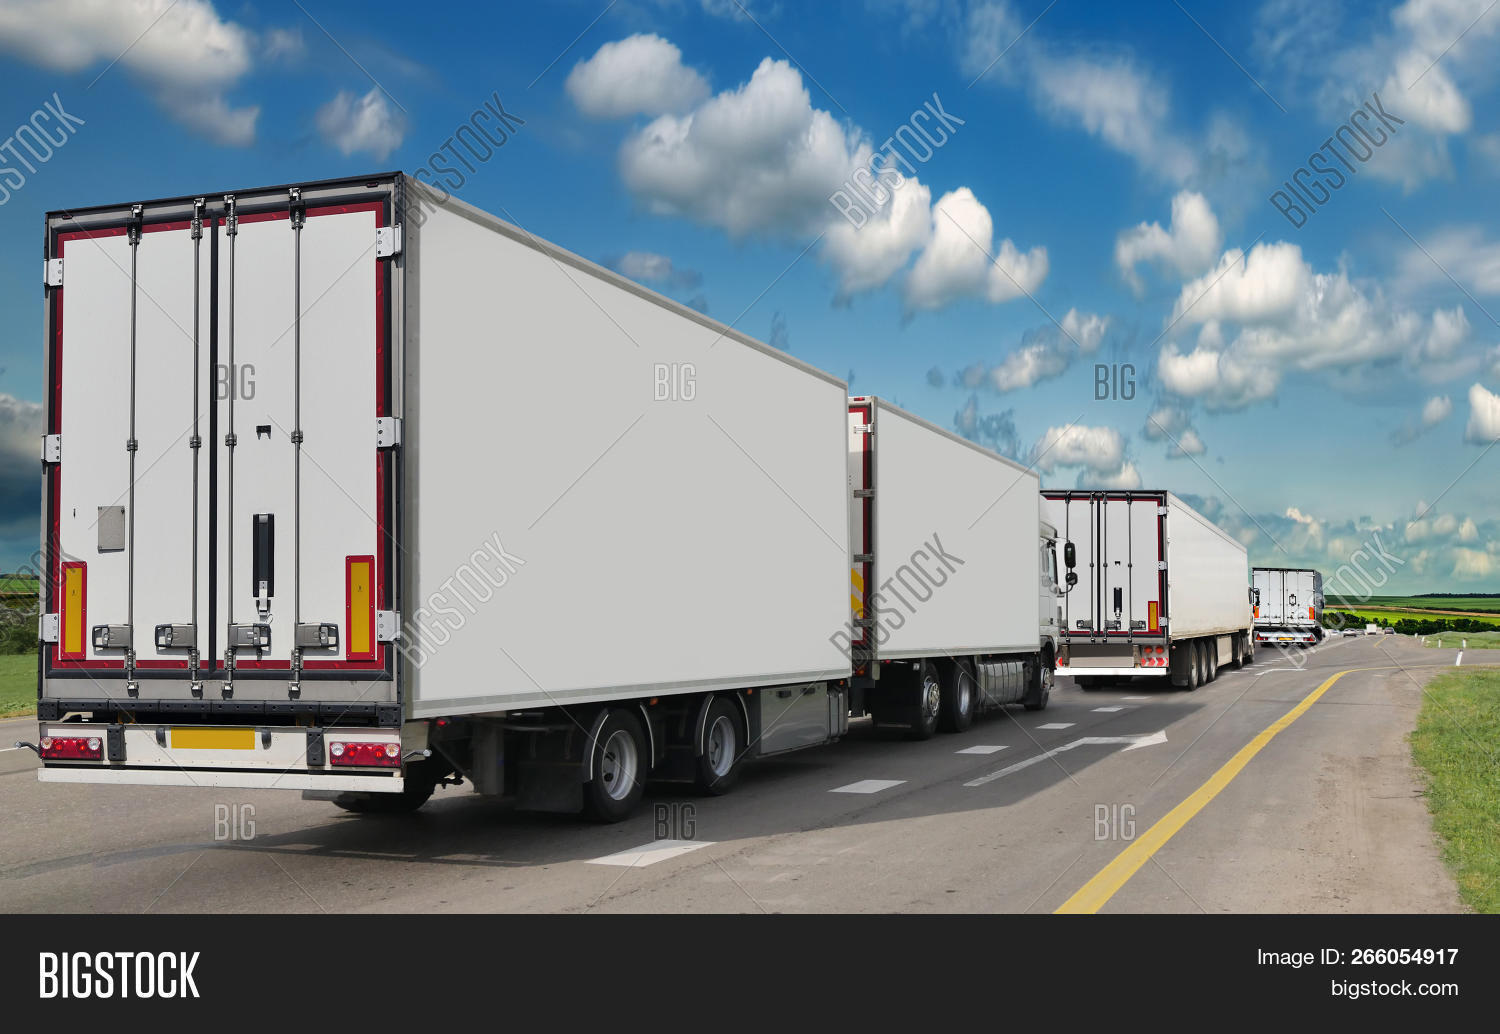 auto,automobile,blank,blue,business,busy,car,cargo,commercial,container,delivery,diesel,driving,export,field,freight,fuel,full,goods,haulage,hauler,heavy,highway,industrial,industry,load,logistic,lorry,modern,new,platform,road,semi,semi-truck,shipment,sky,speed,speeding,supply,trailer,transport,transportation,transporter,travel,truck,trucking,vehicle,working